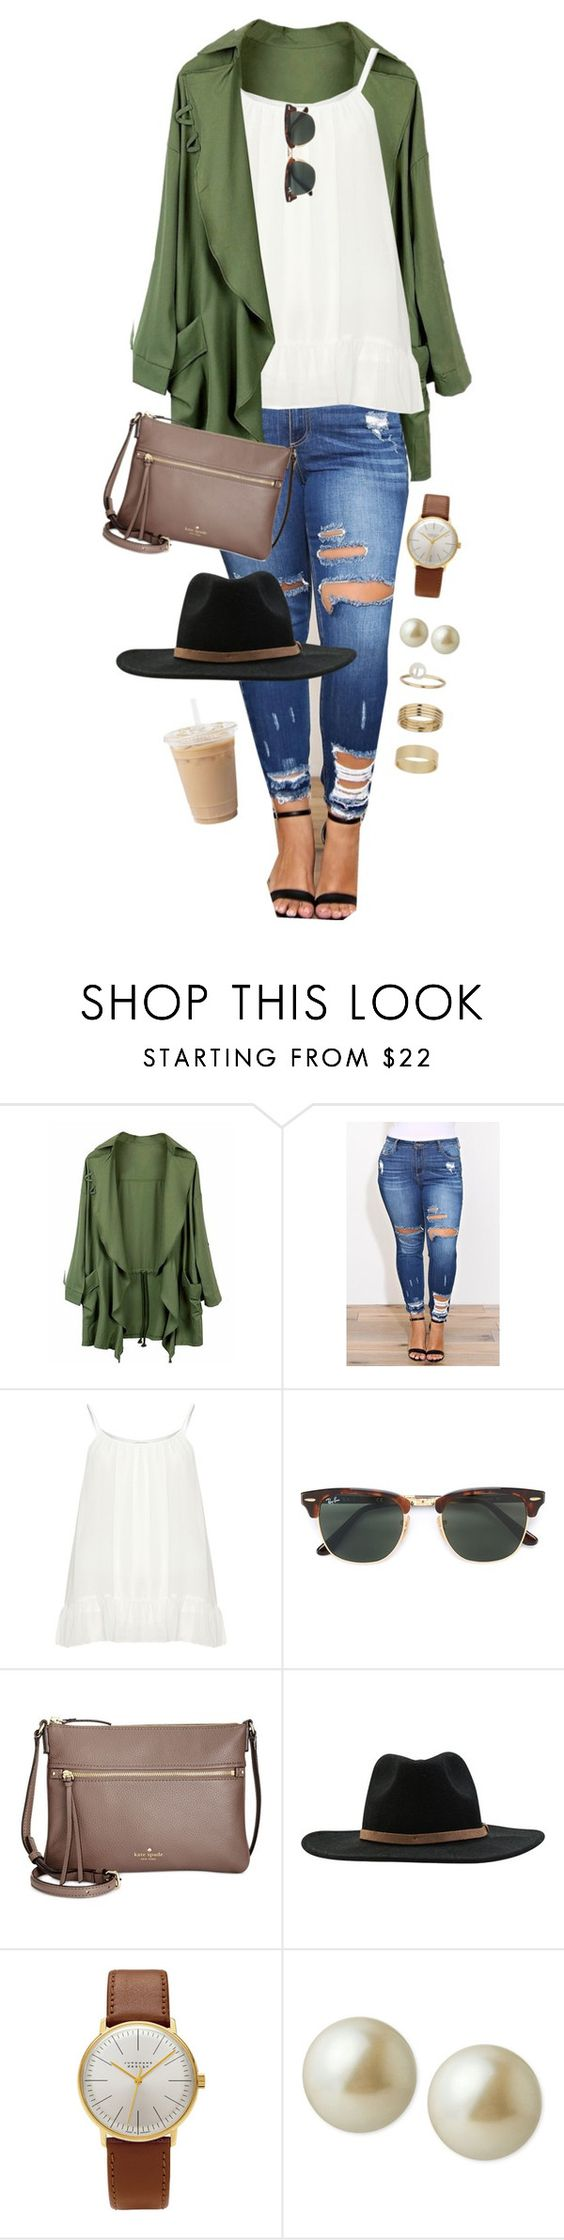 """""""Size doesn't matter to God. So if it bothers other people, that's they're problem not yours"""" by joannakirk ❤ liked on Polyvore featuring Zizzi, Ray-Ban, Kate Spade, RVCA, Junghans, Carolee and Miss Selfridge"""